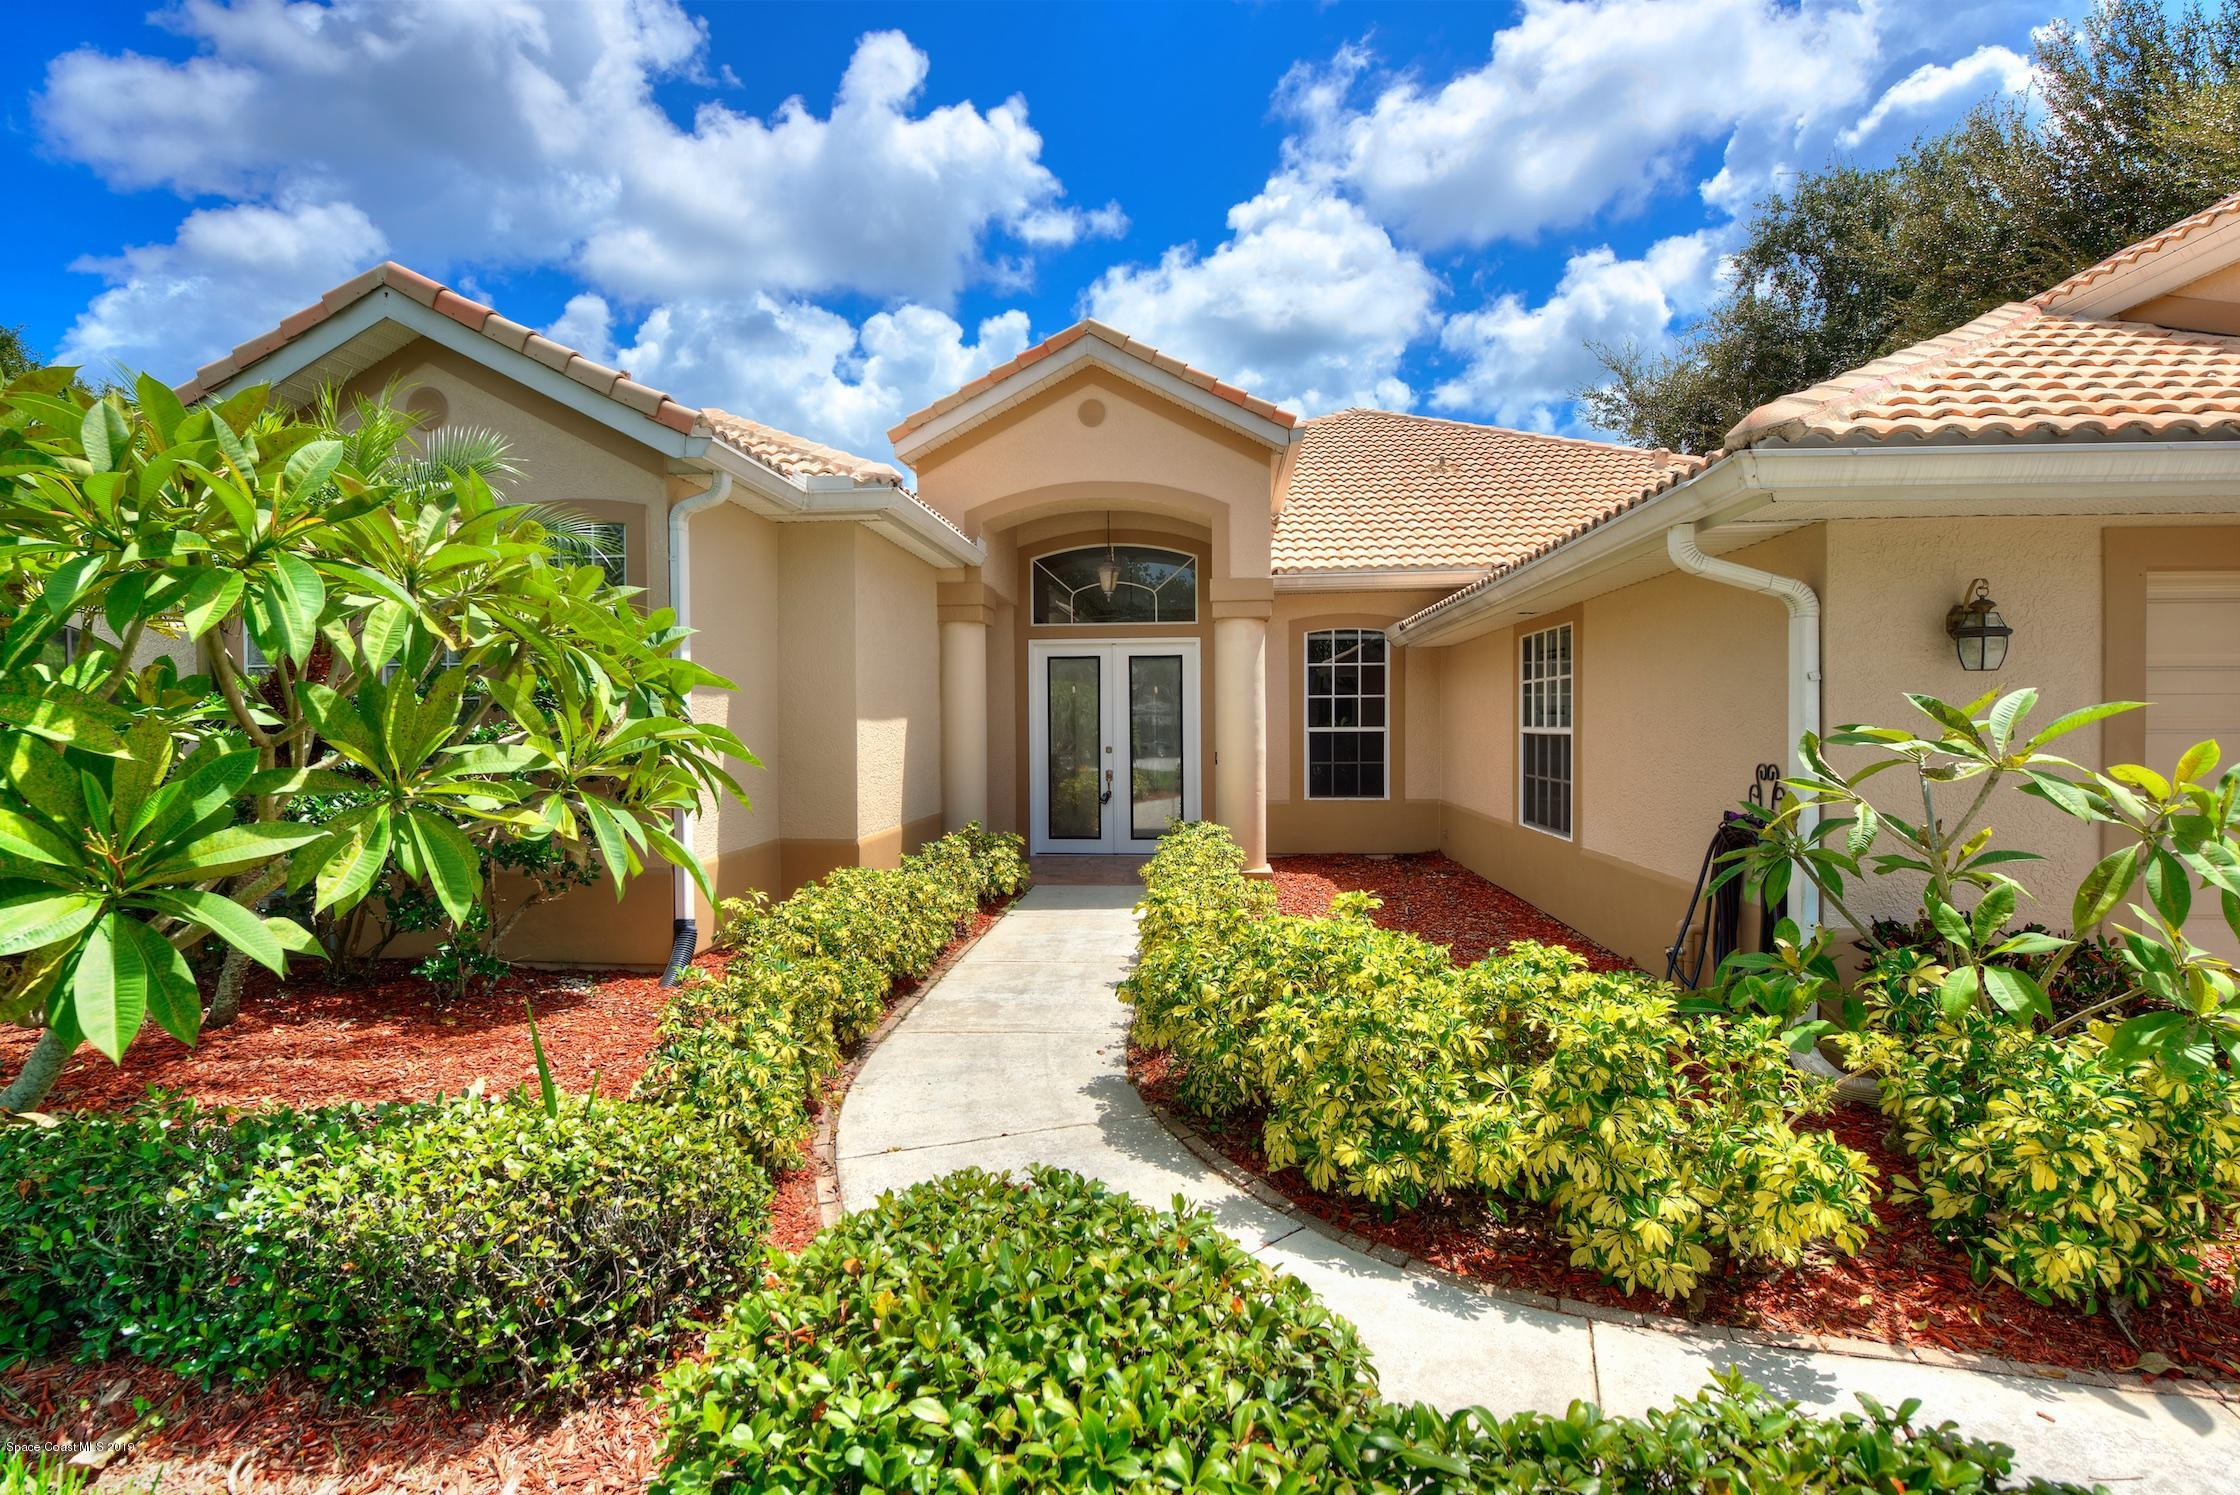 Single Family Homes for Sale at 409 Birchington Melbourne, Florida 32940 United States